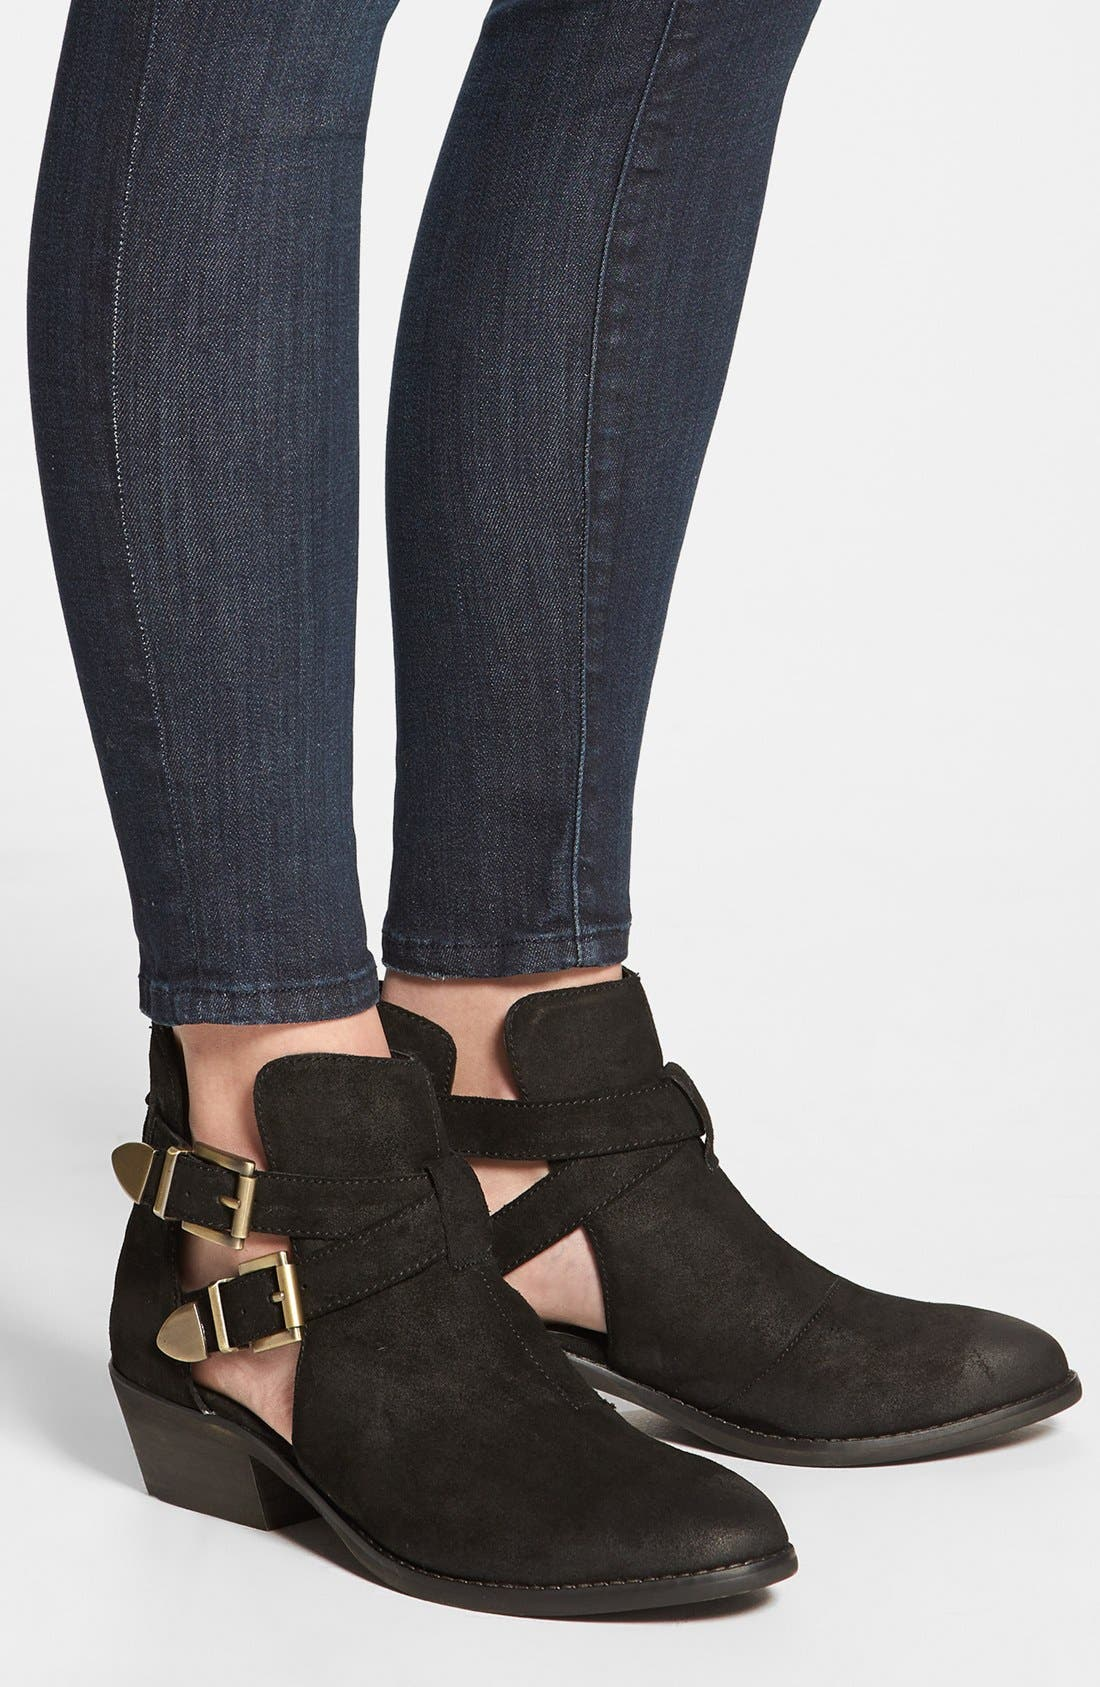 STEVE MADDEN,                             'Cinch' Bootie,                             Alternate thumbnail 4, color,                             006